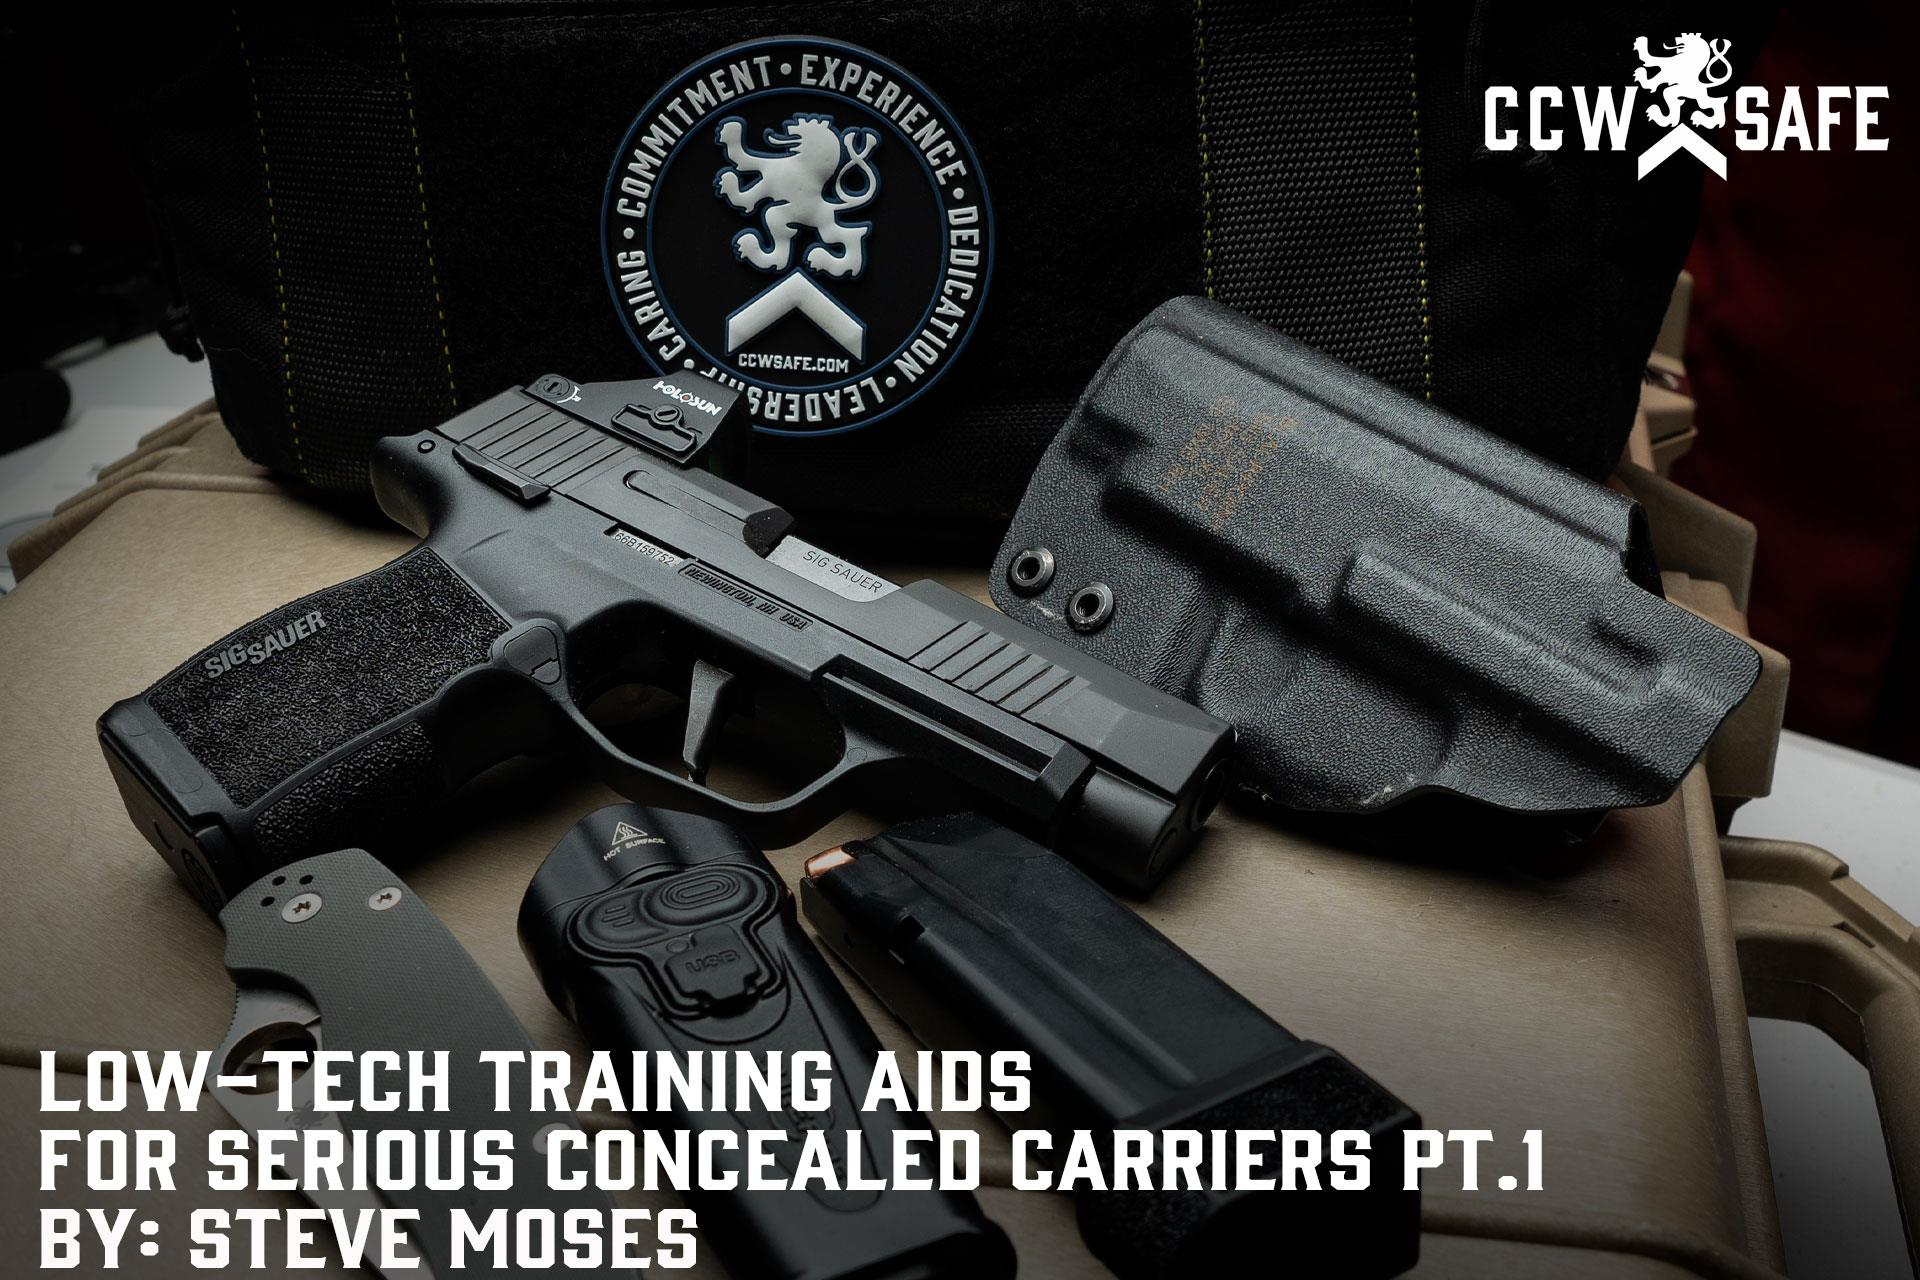 LOW-TECH TRAINING AIDS FOR SERIOUS CONCEALED CARRIERS PT. 1